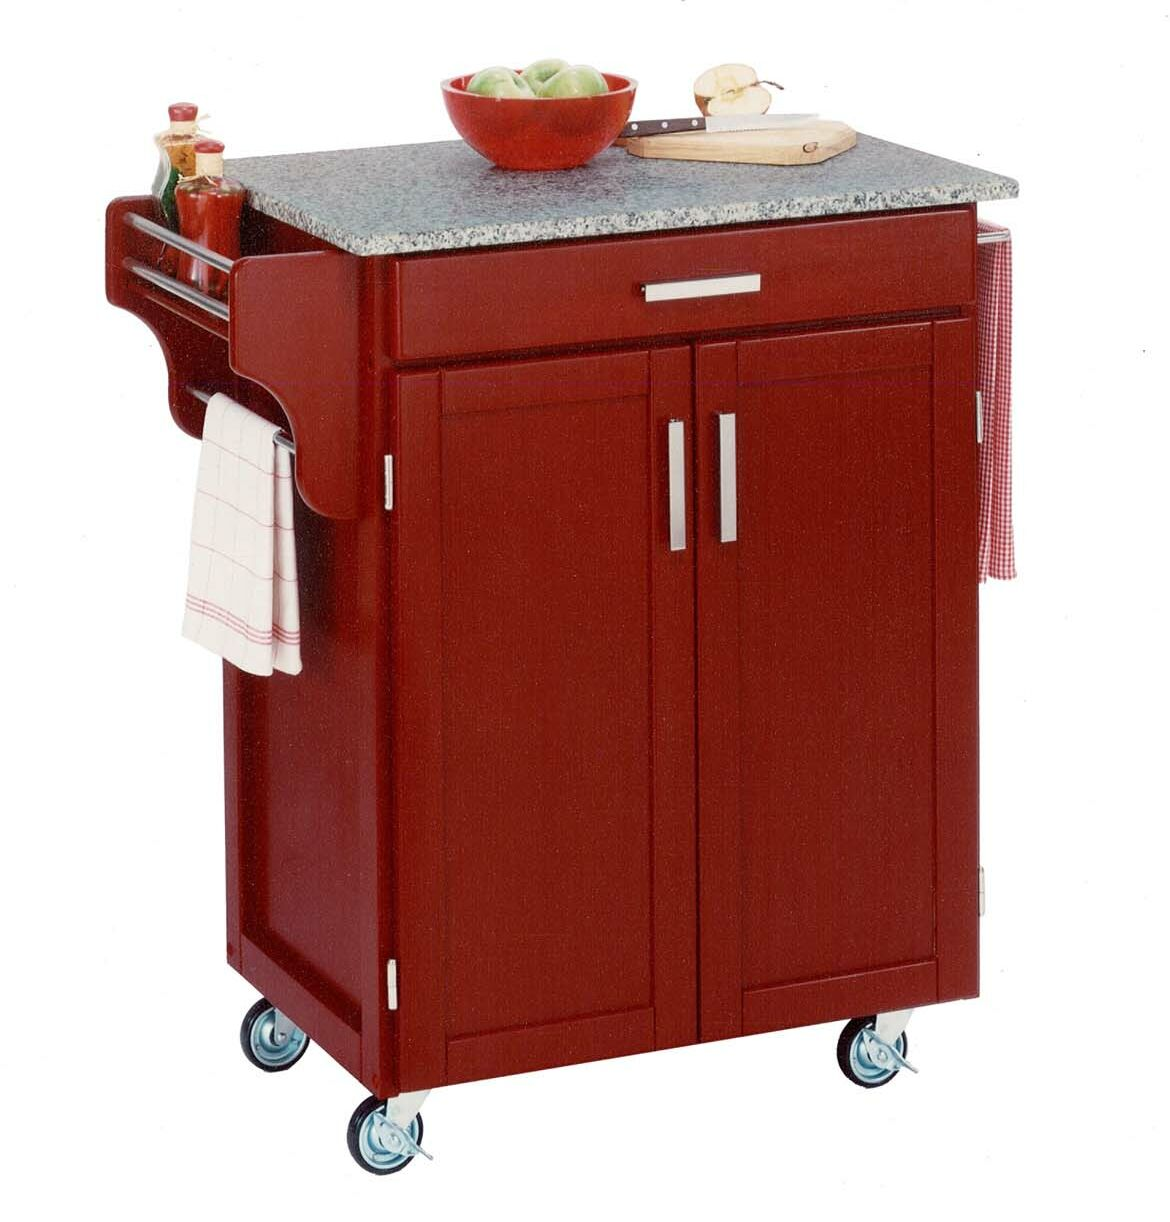 Kitchen Carts Utility Cars Microwave Workcenter